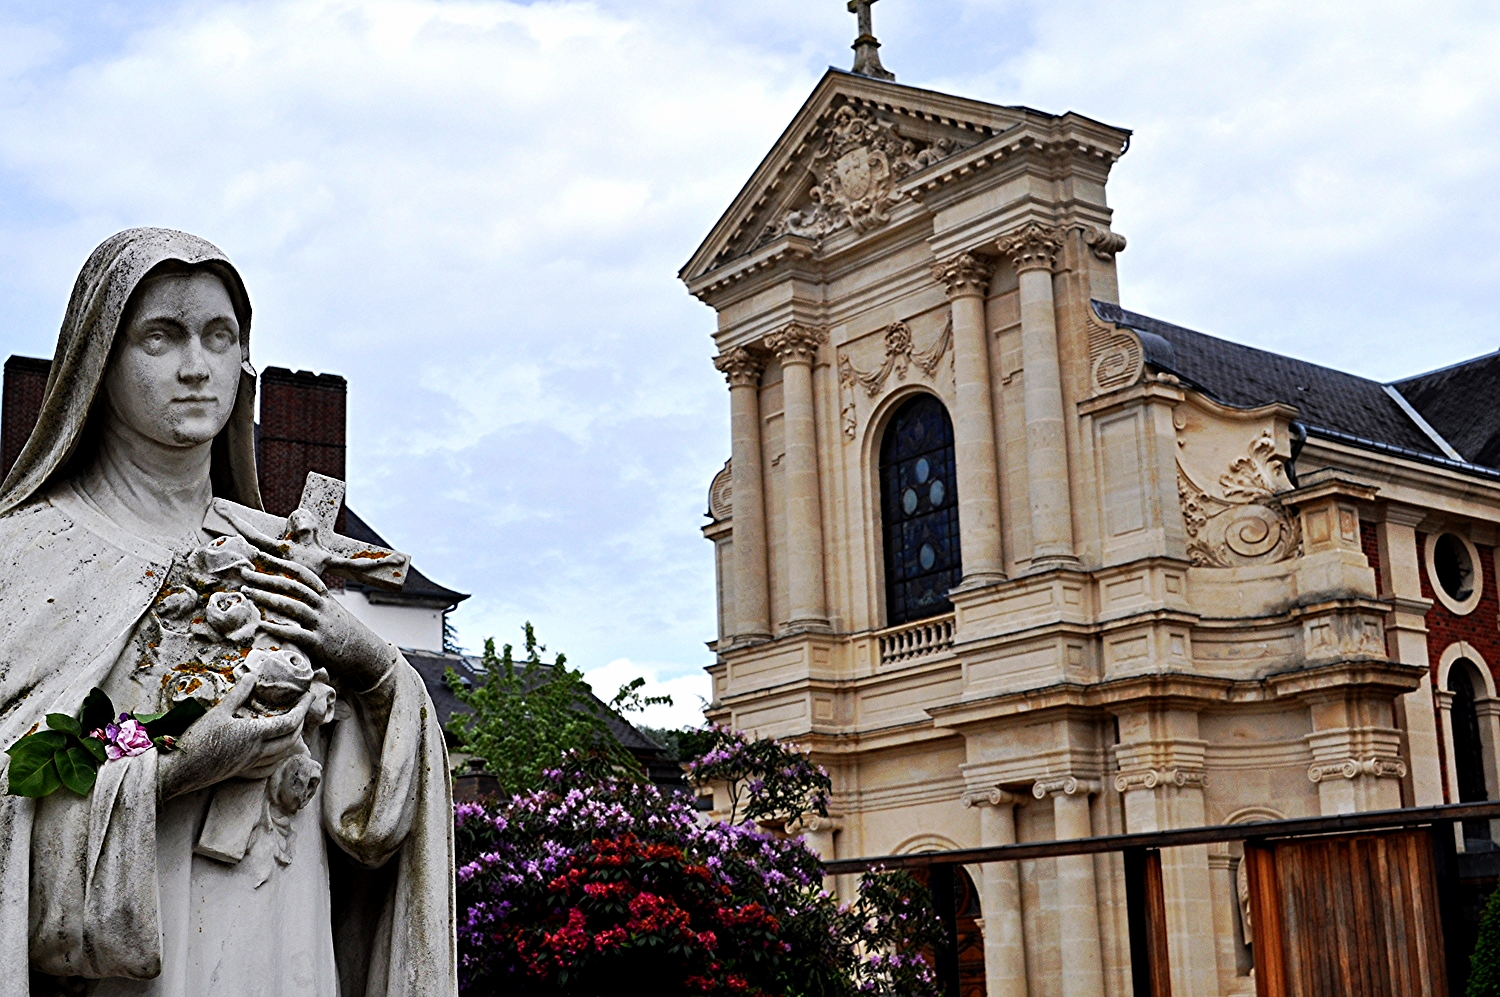 ^ taken at the Carmelite Convent in Lisieux, France  -- I had an opportunity to visit there while studying abroad in Paris.